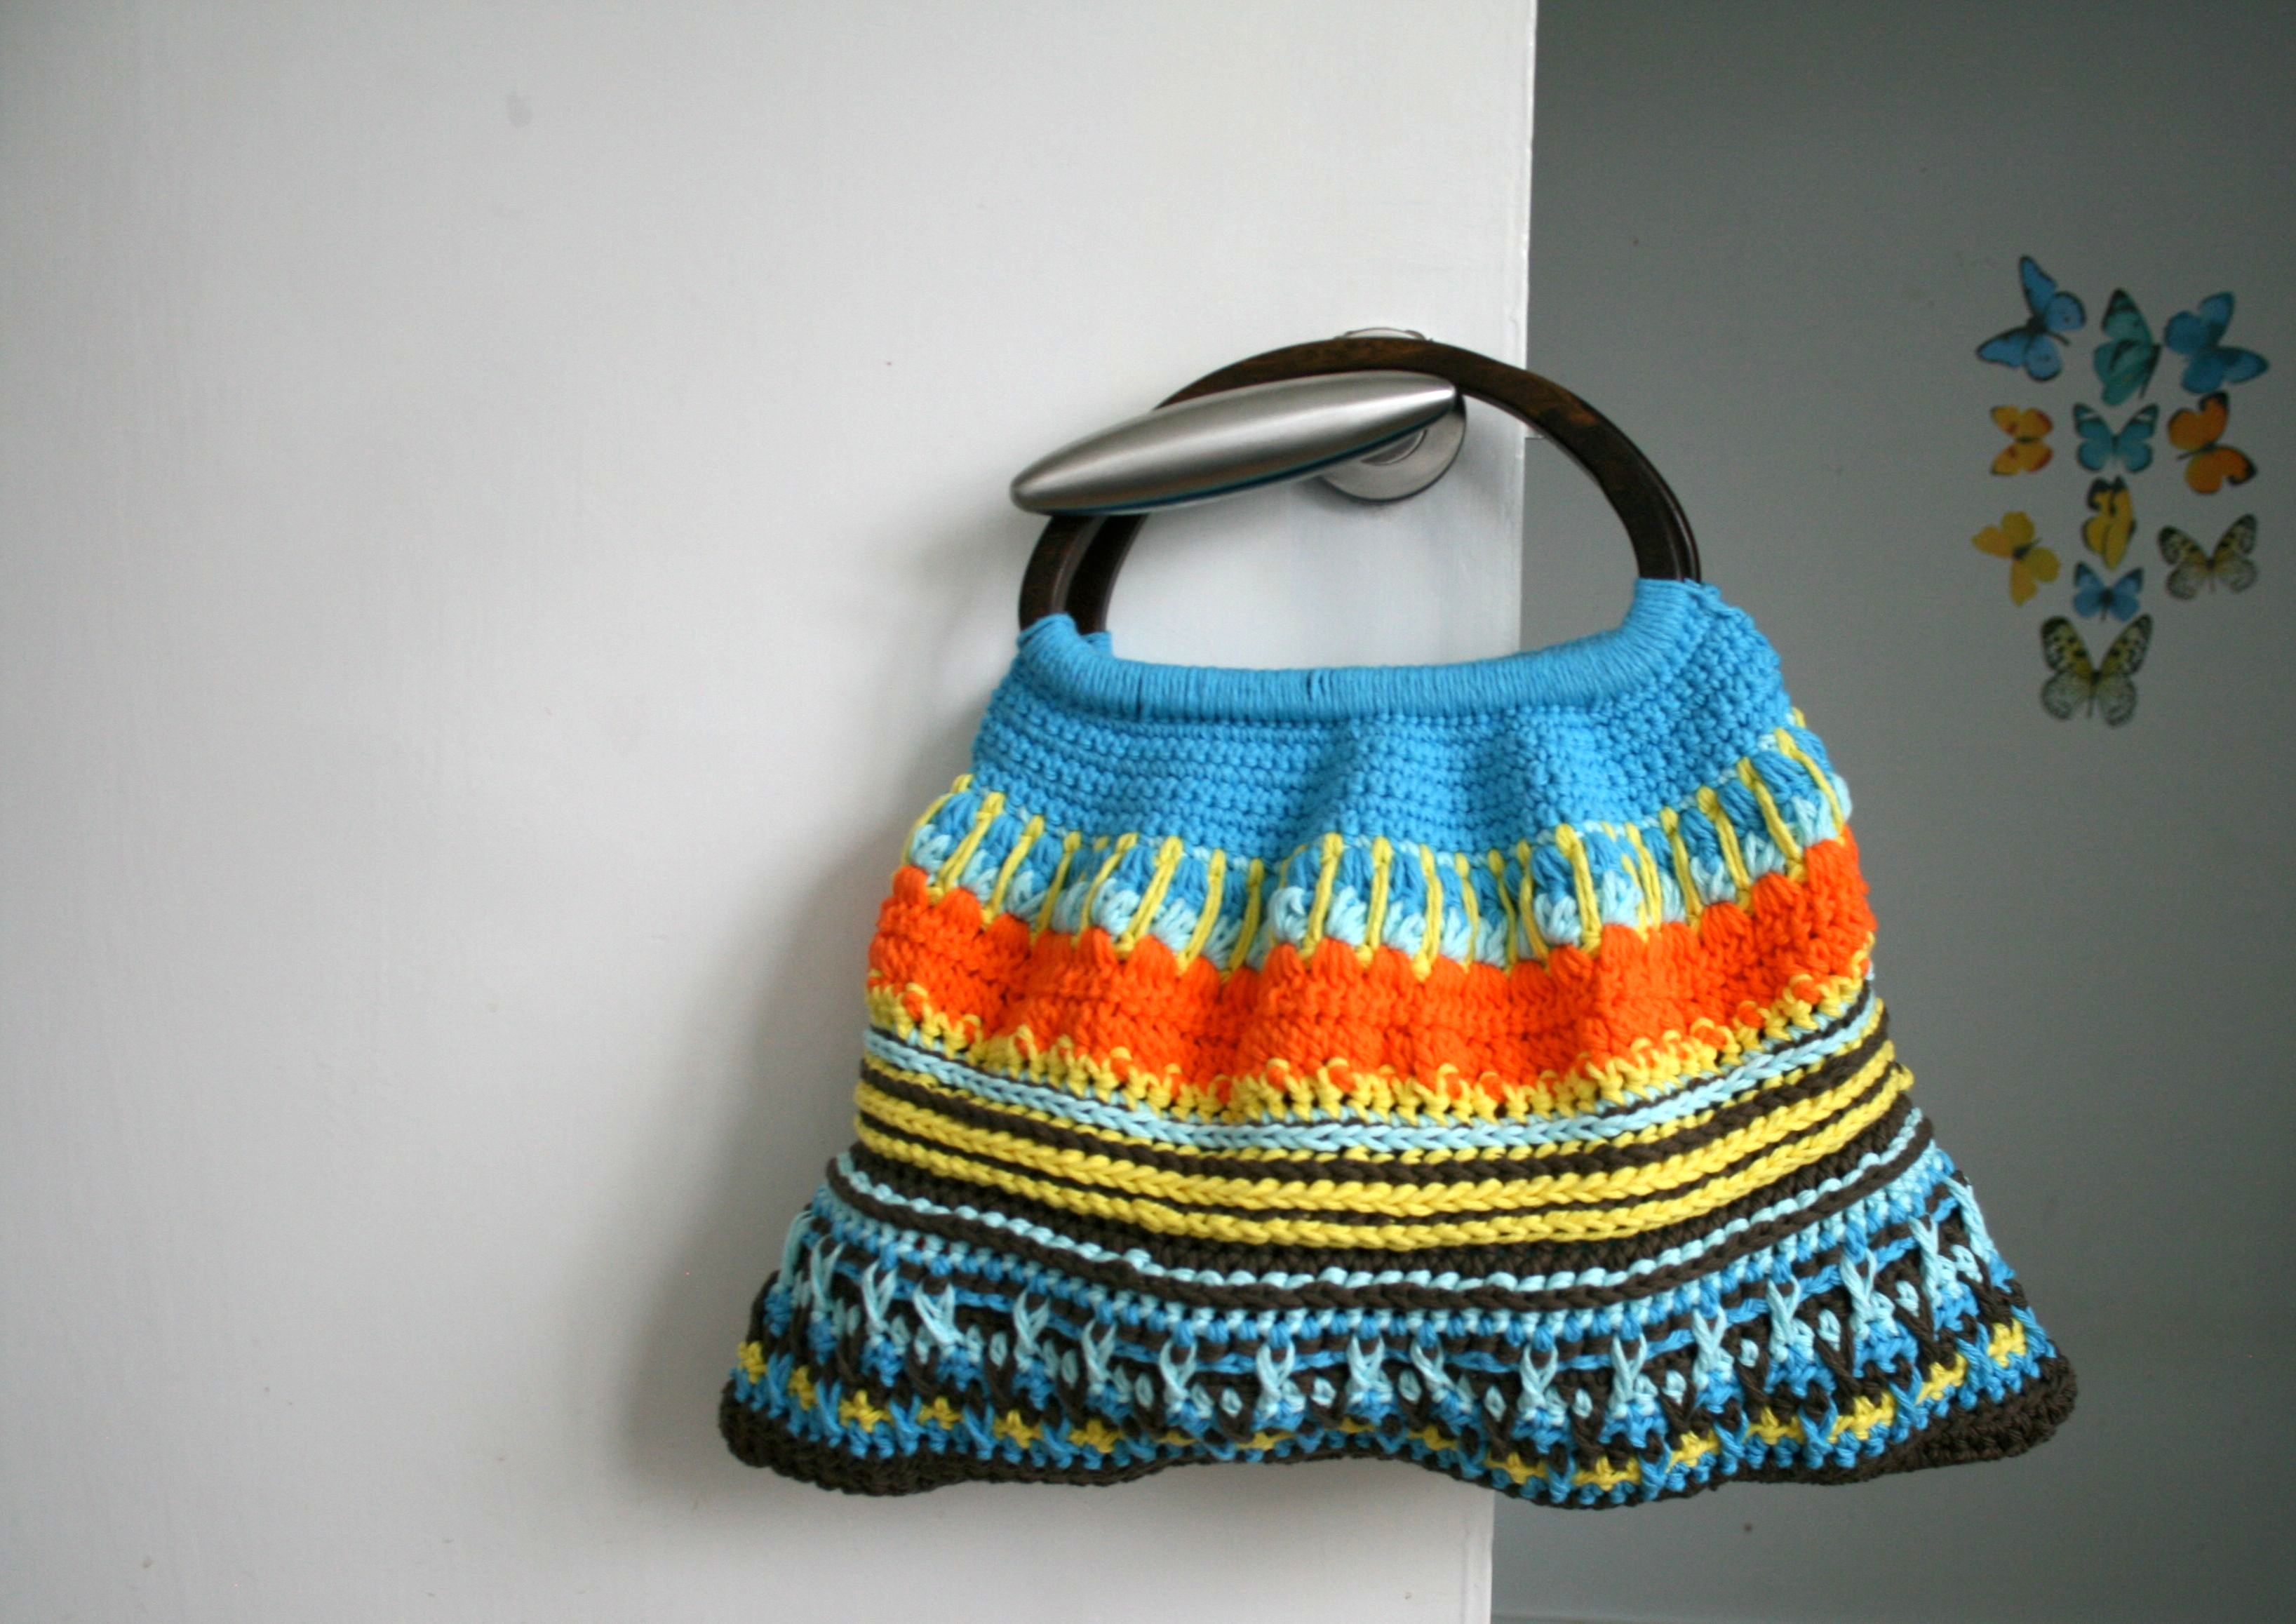 Wooden handle retro crochet purse pattern only $3! - Luz Patterns